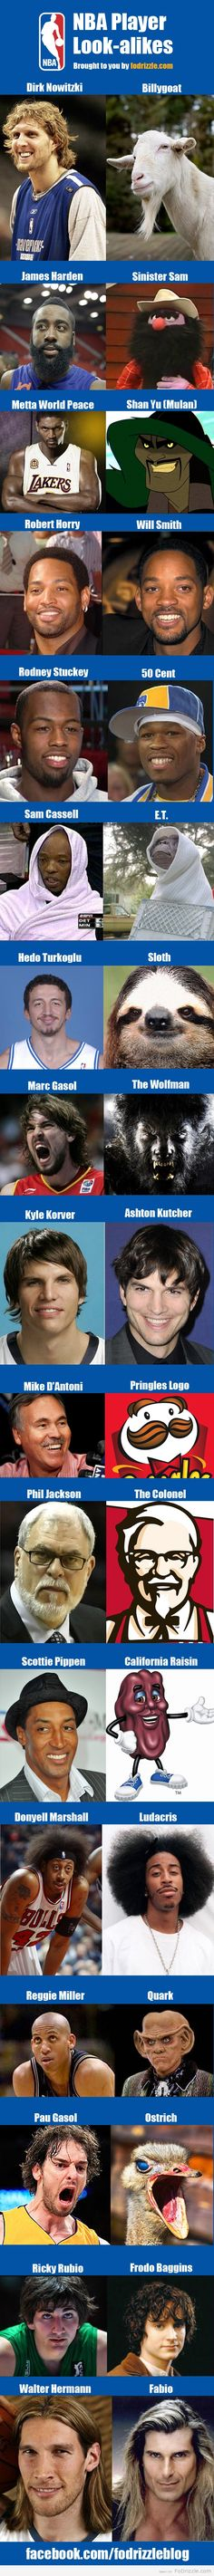 NBA look-alikes.